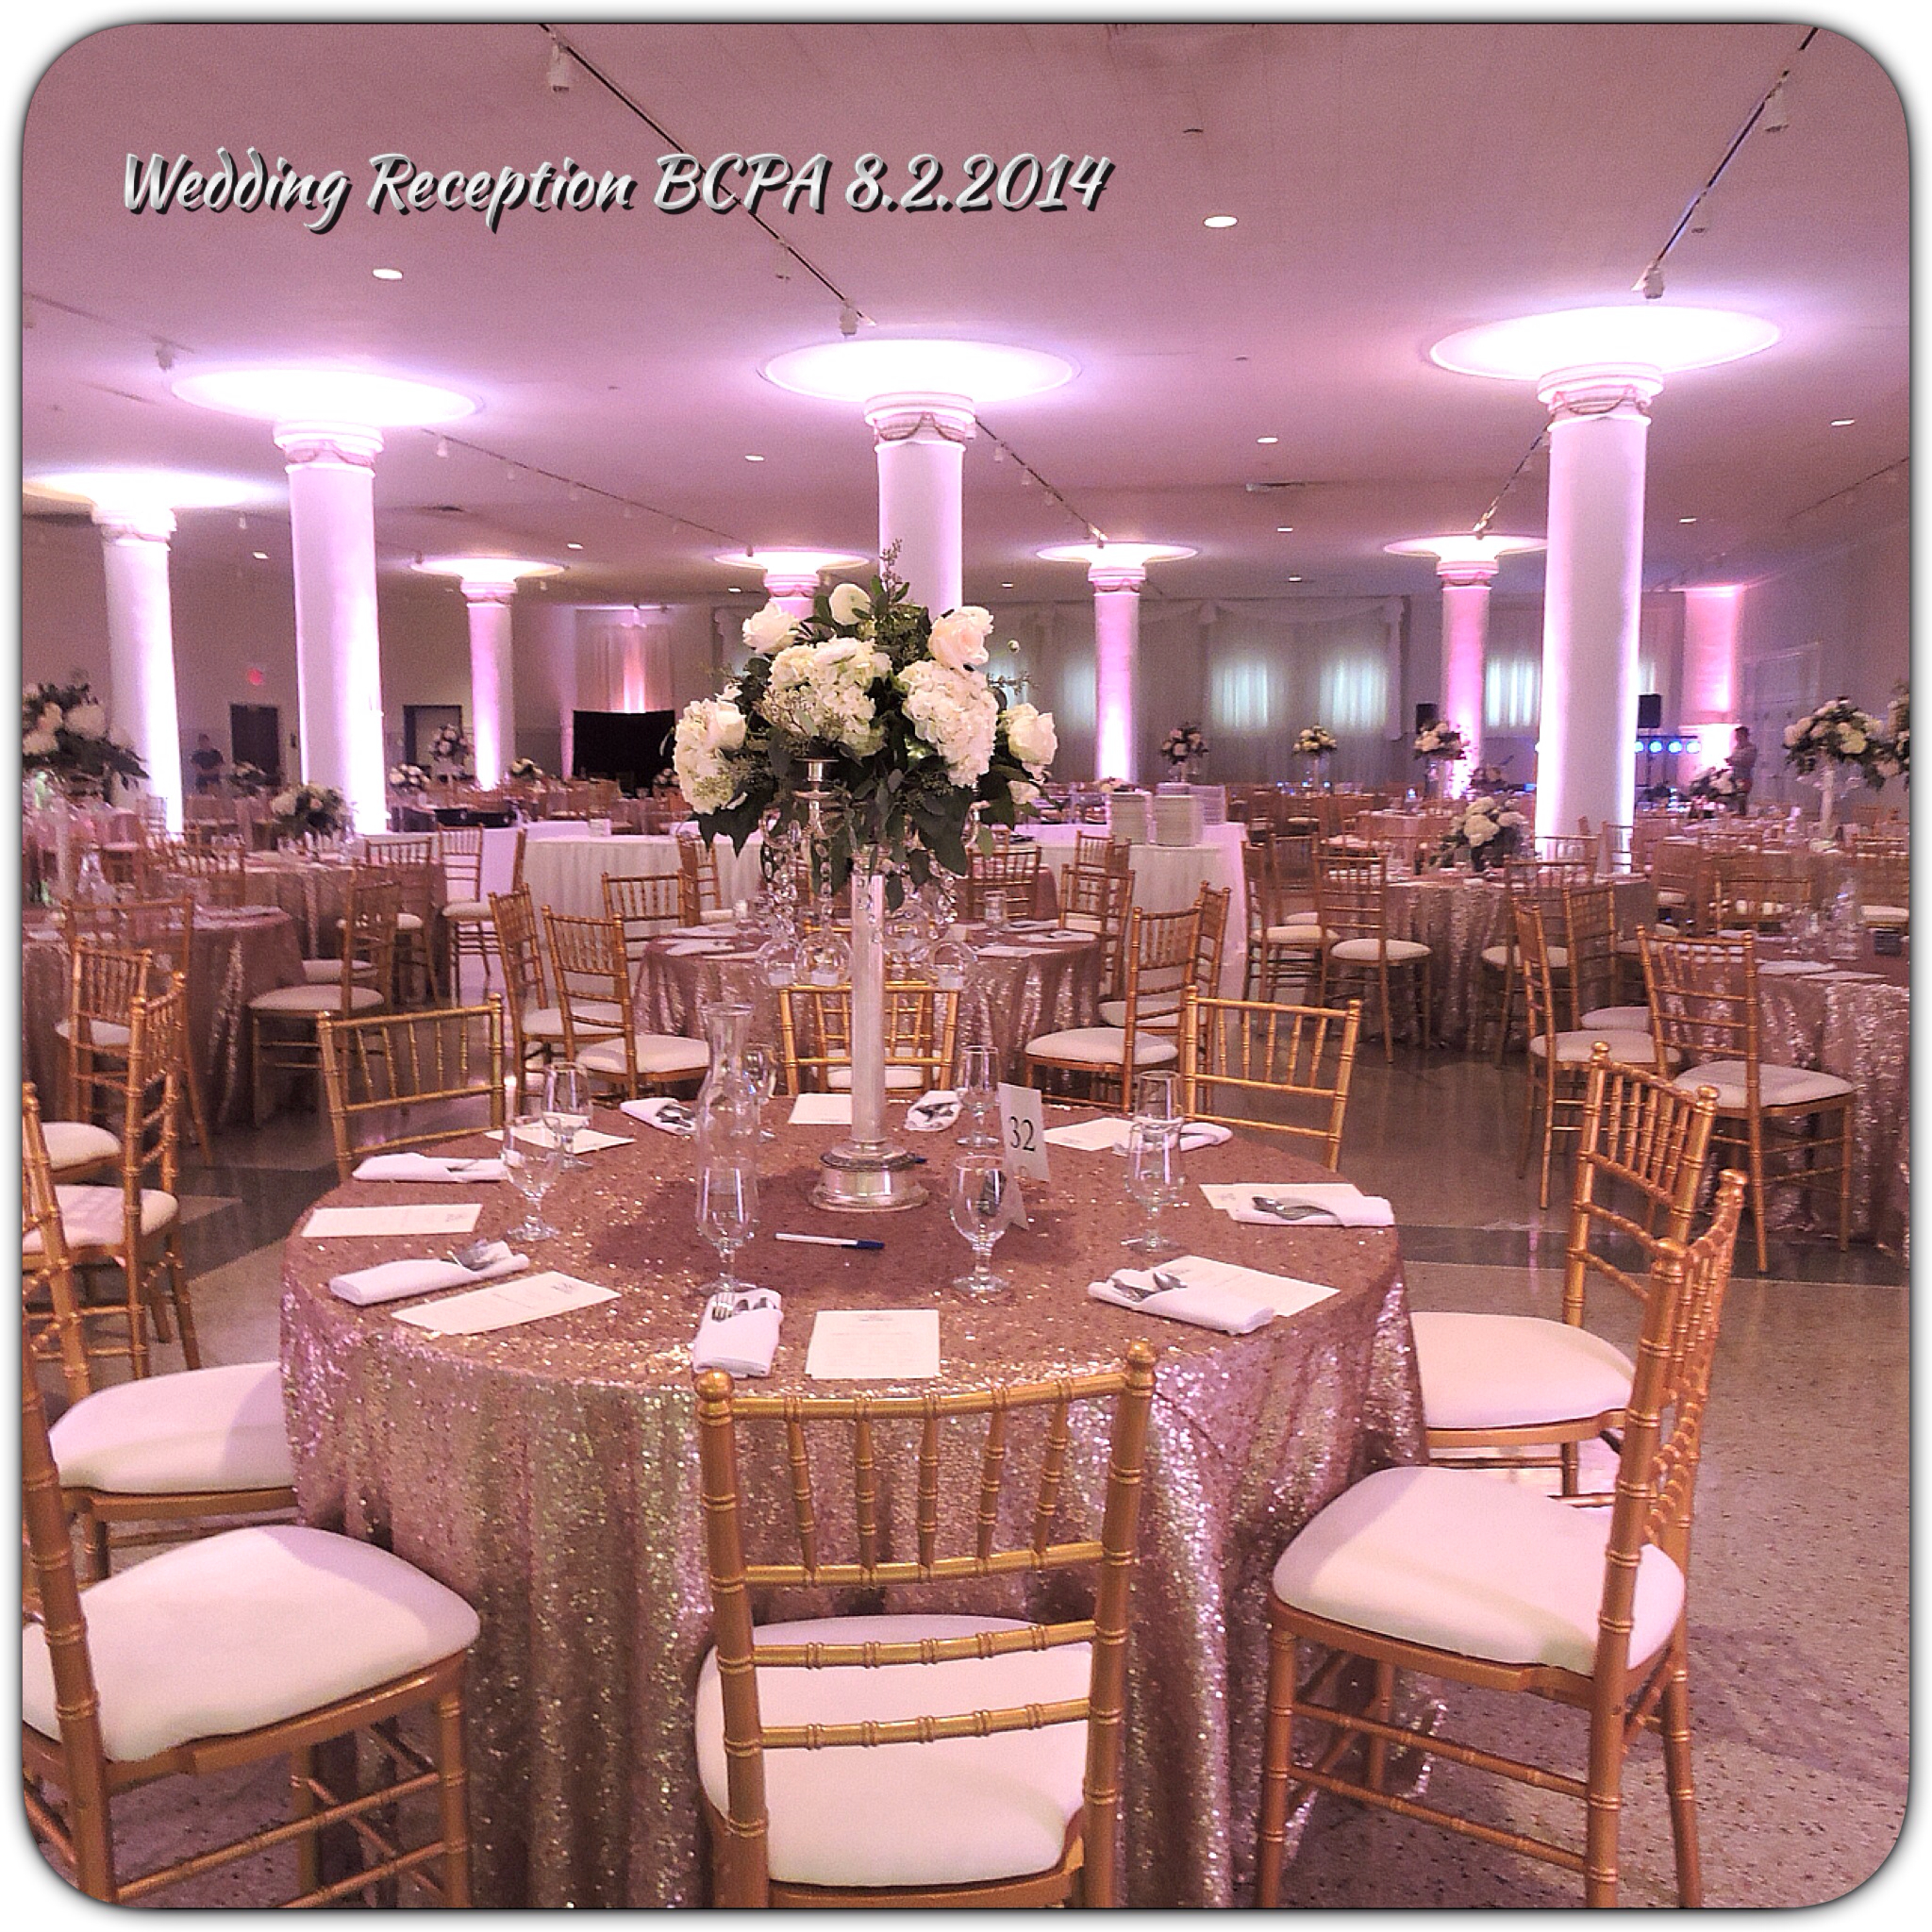 Wedding Reception at BCPA